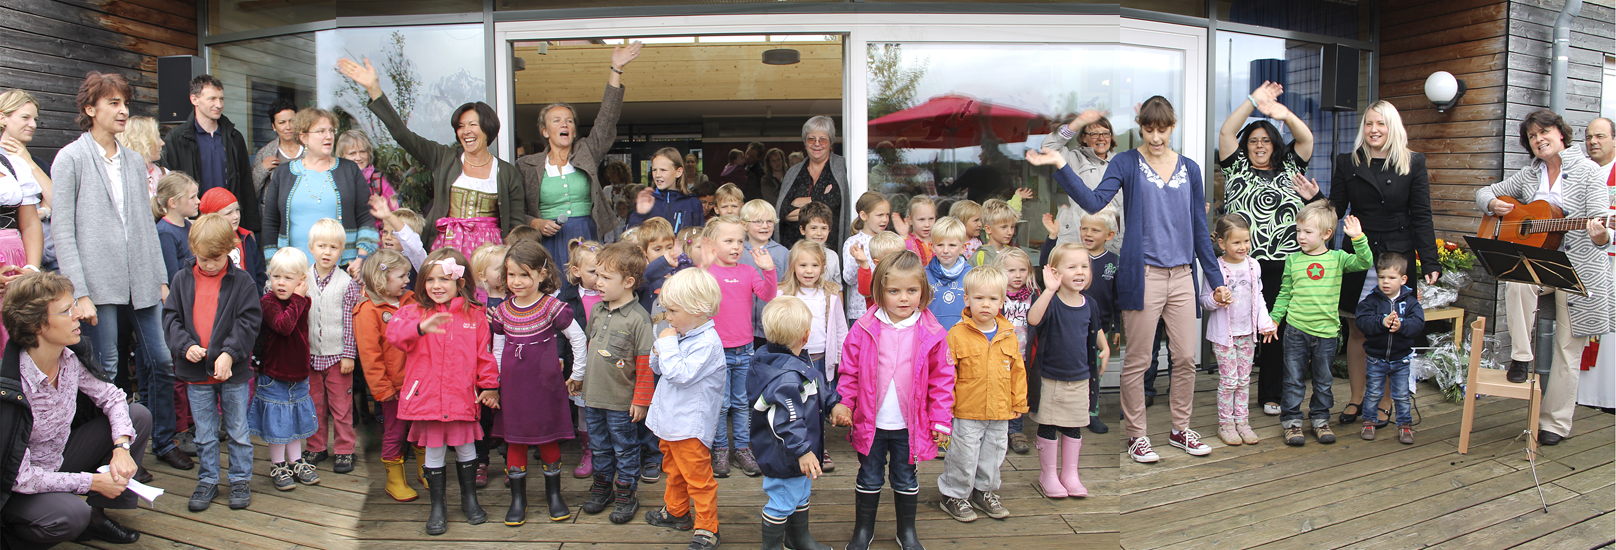 Montessori Kinderhaus Oberhaching